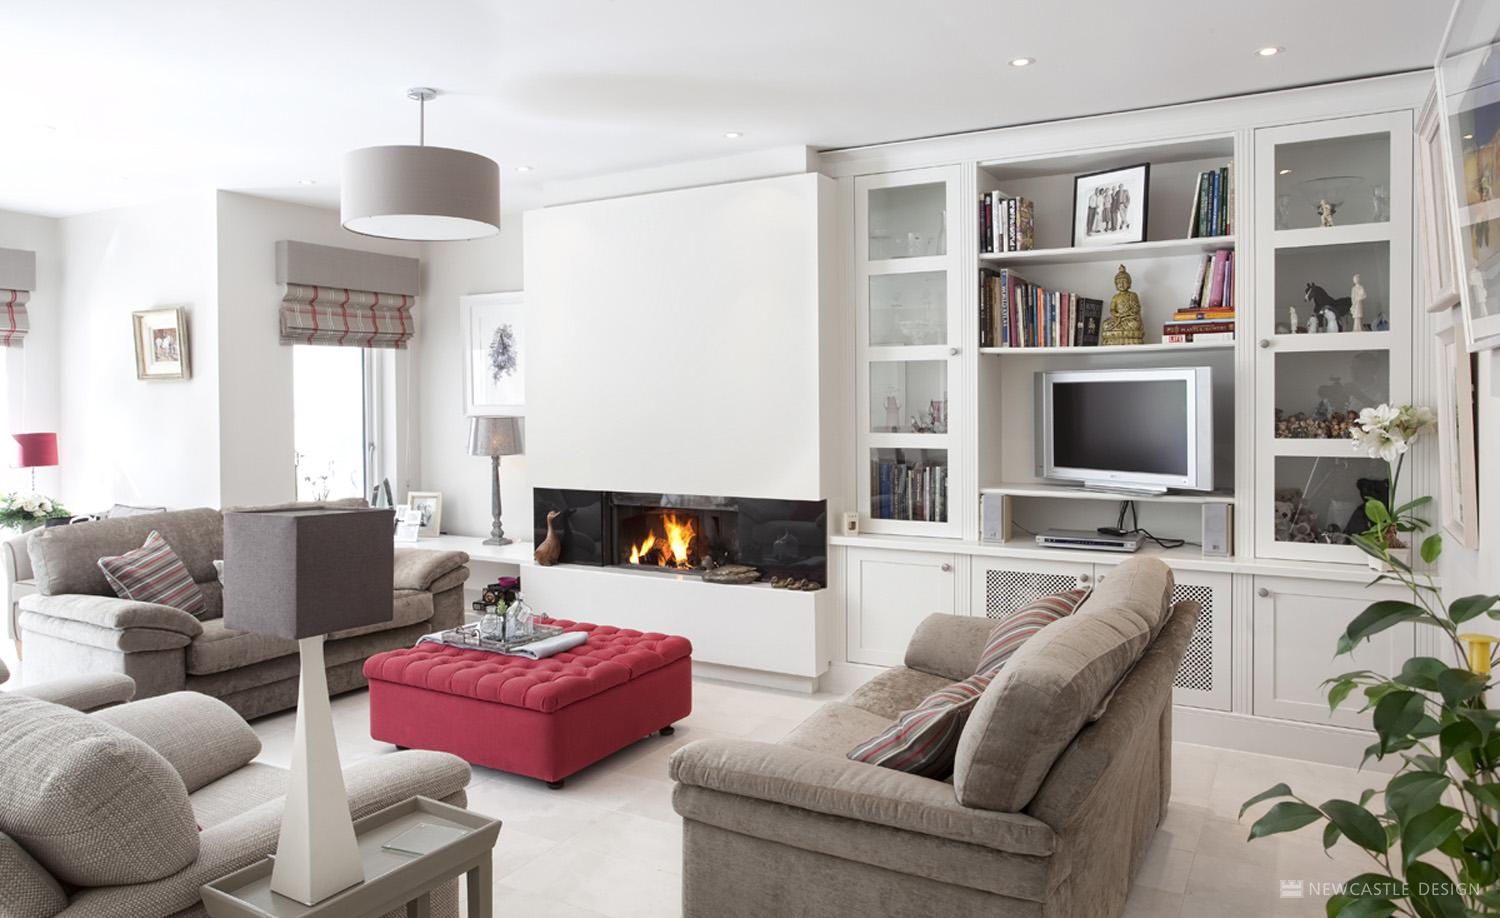 Photo courtesy of ann lowengart photo by: Study & Living Room Furniture   Interior Design Ideas